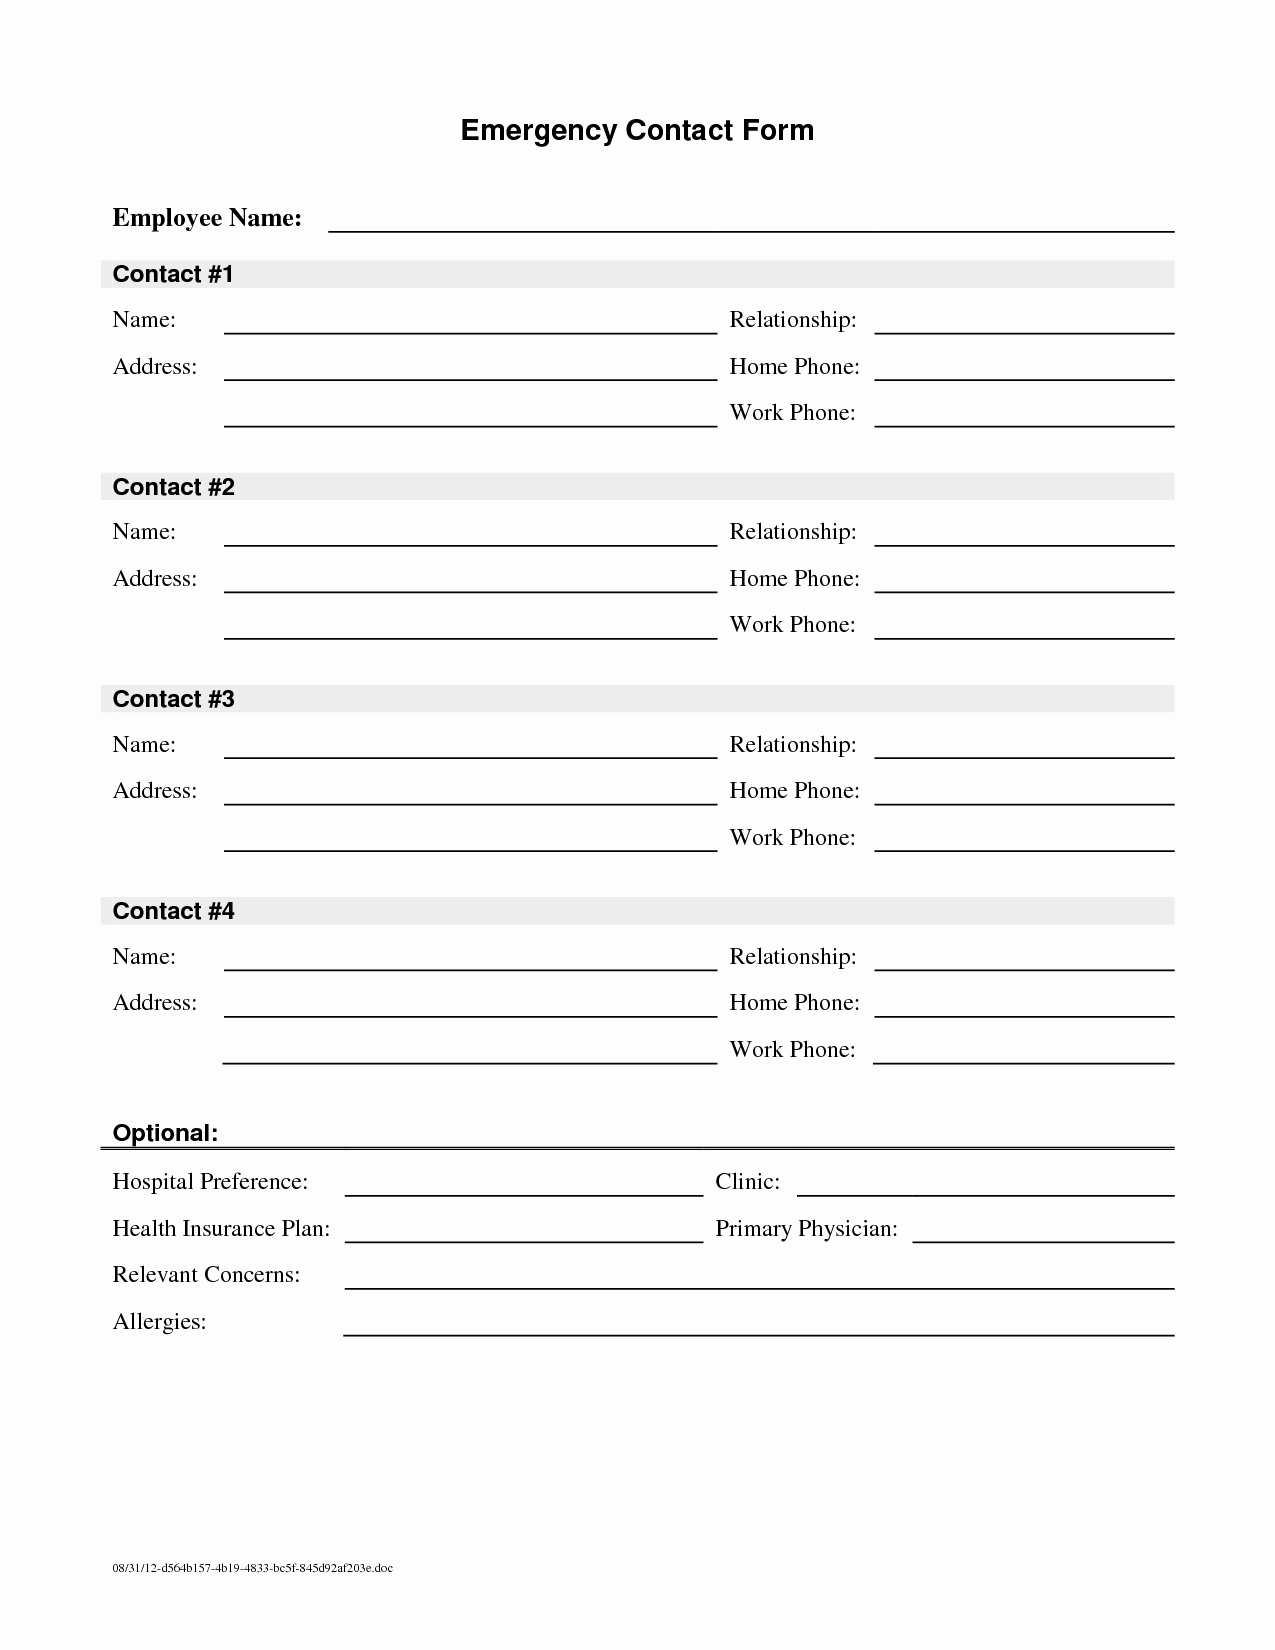 Emergency Contact form Template Elegant Employee Emergency Contact Printable form to Pin